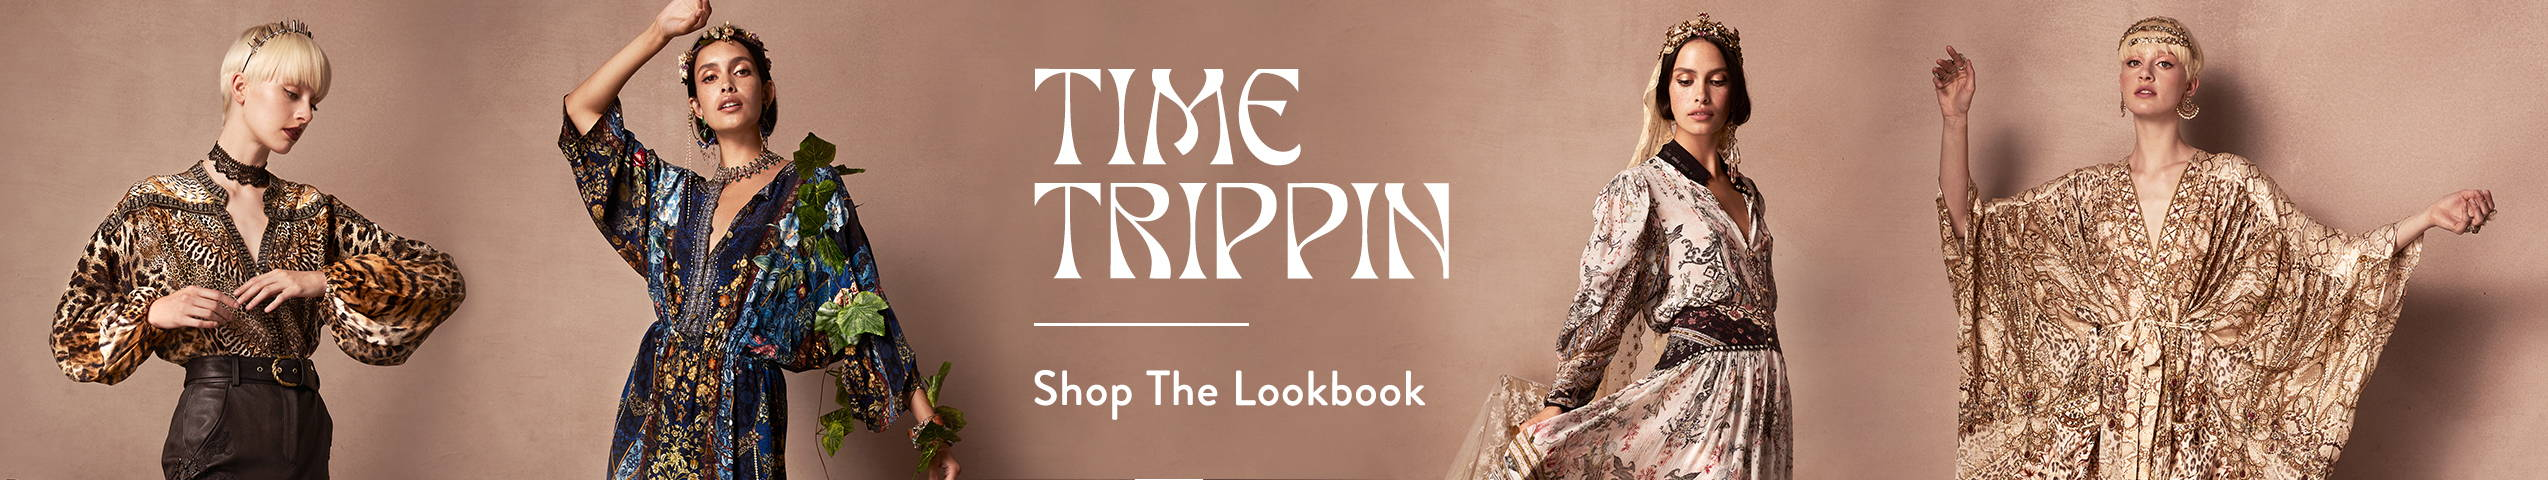 Time Trippin | Shop The Lookbook